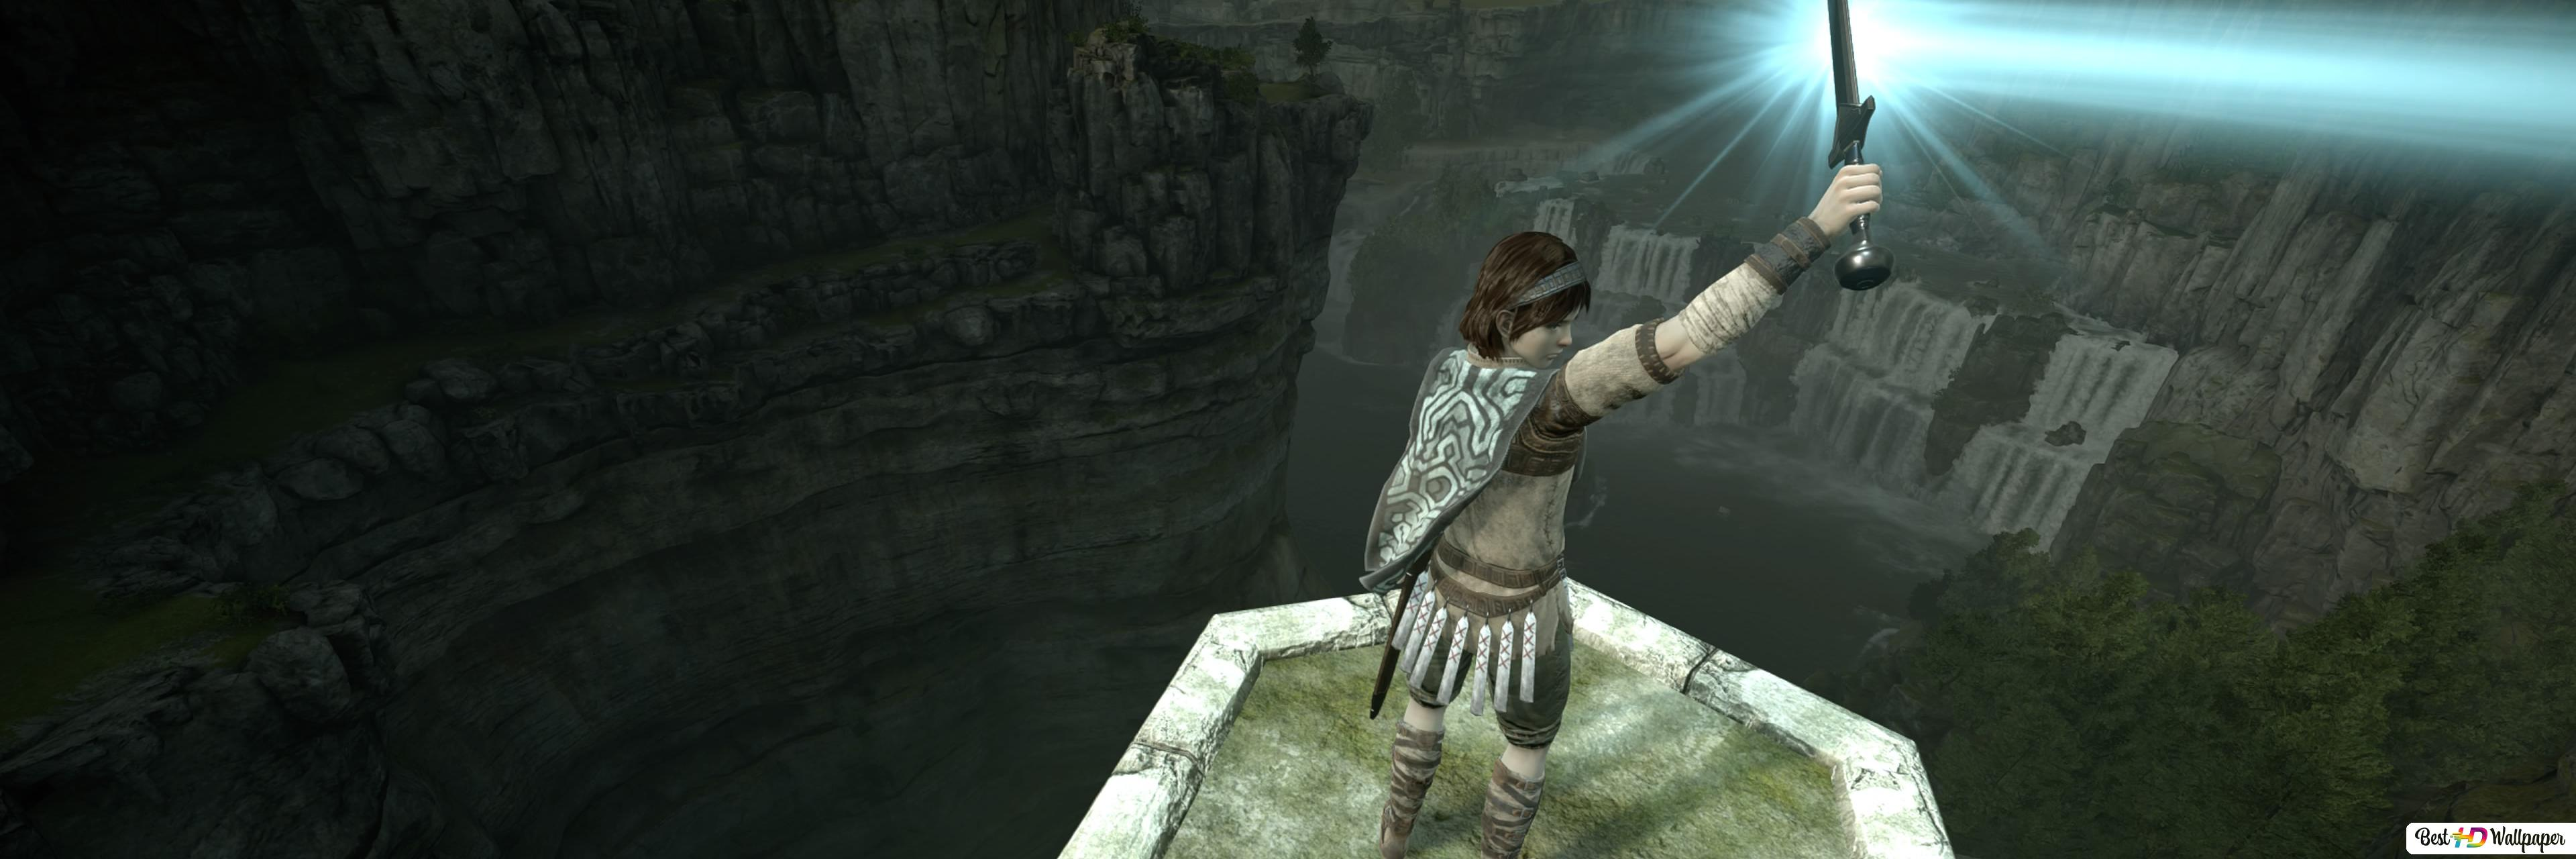 Shadow Of The Colossus Agro Hd Wallpaper Download